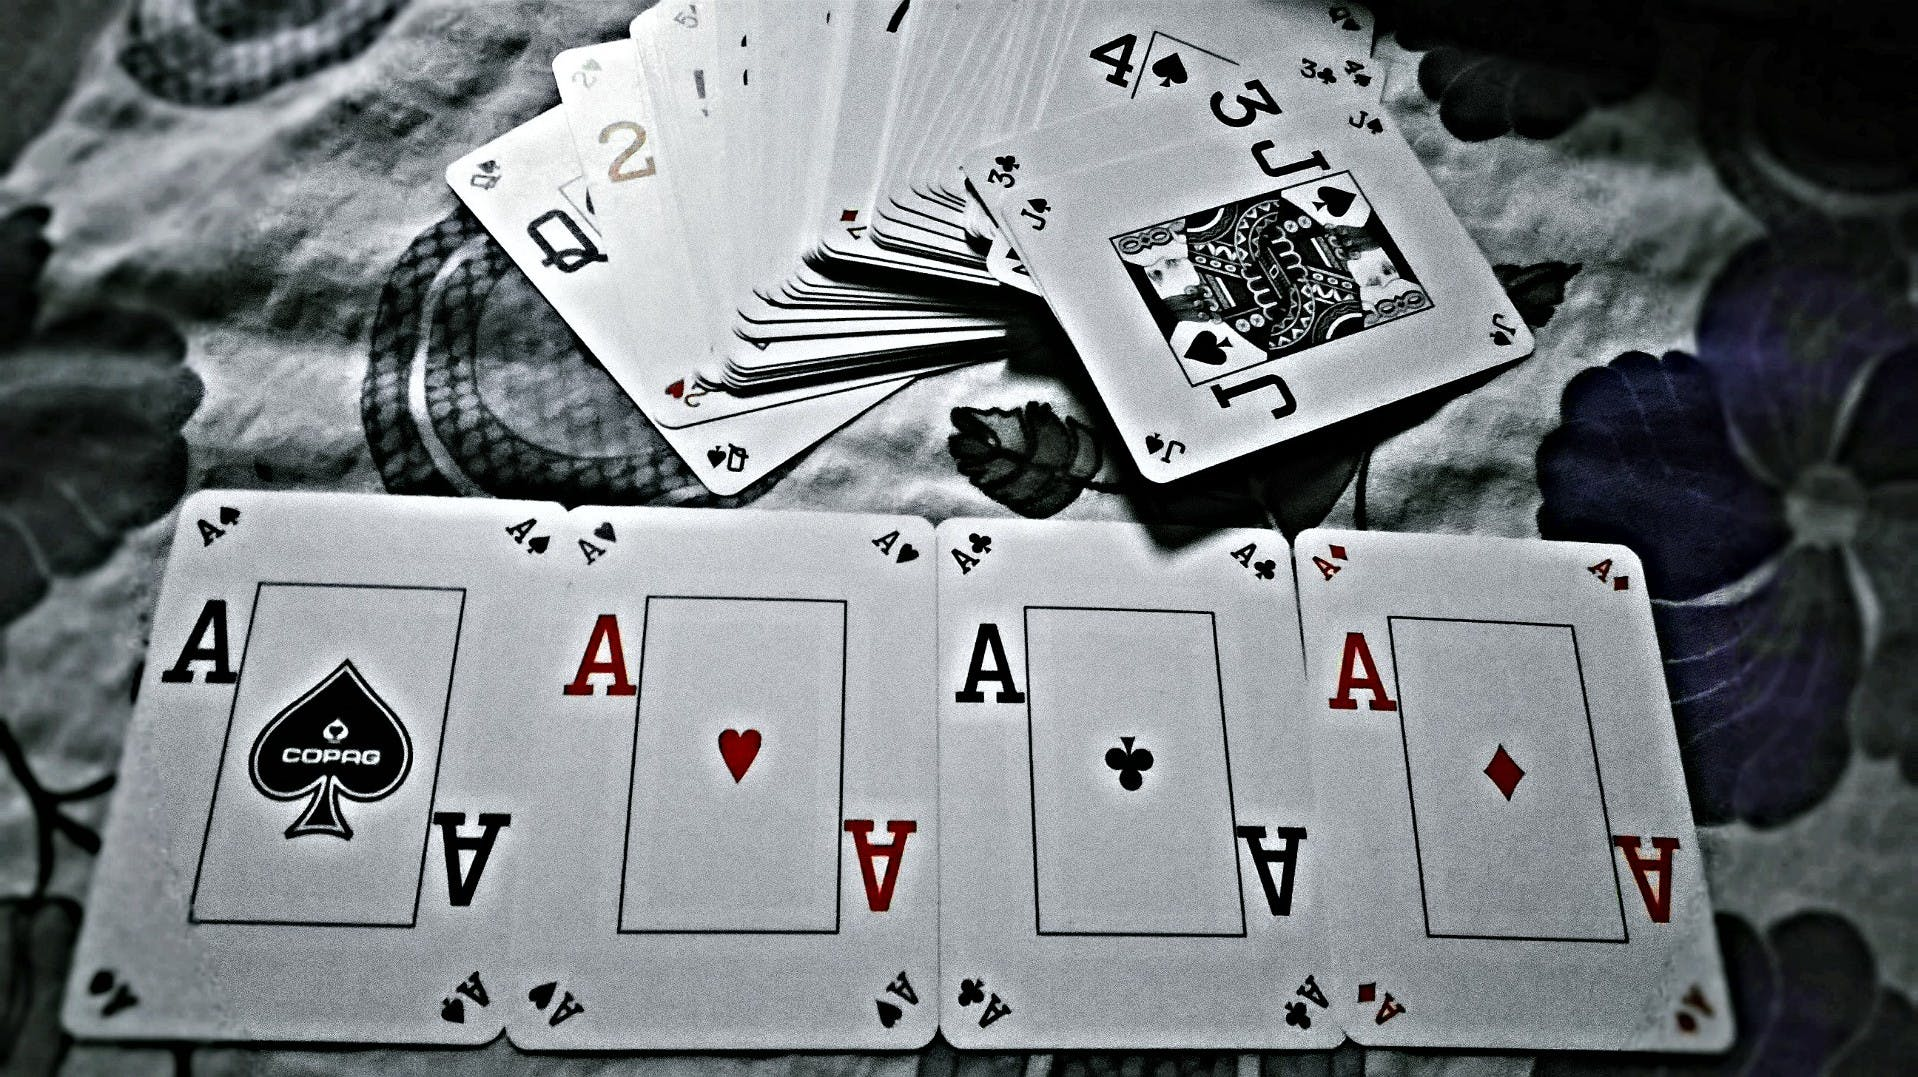 Grayscale Photography of Playing Cards Placed on Cloth